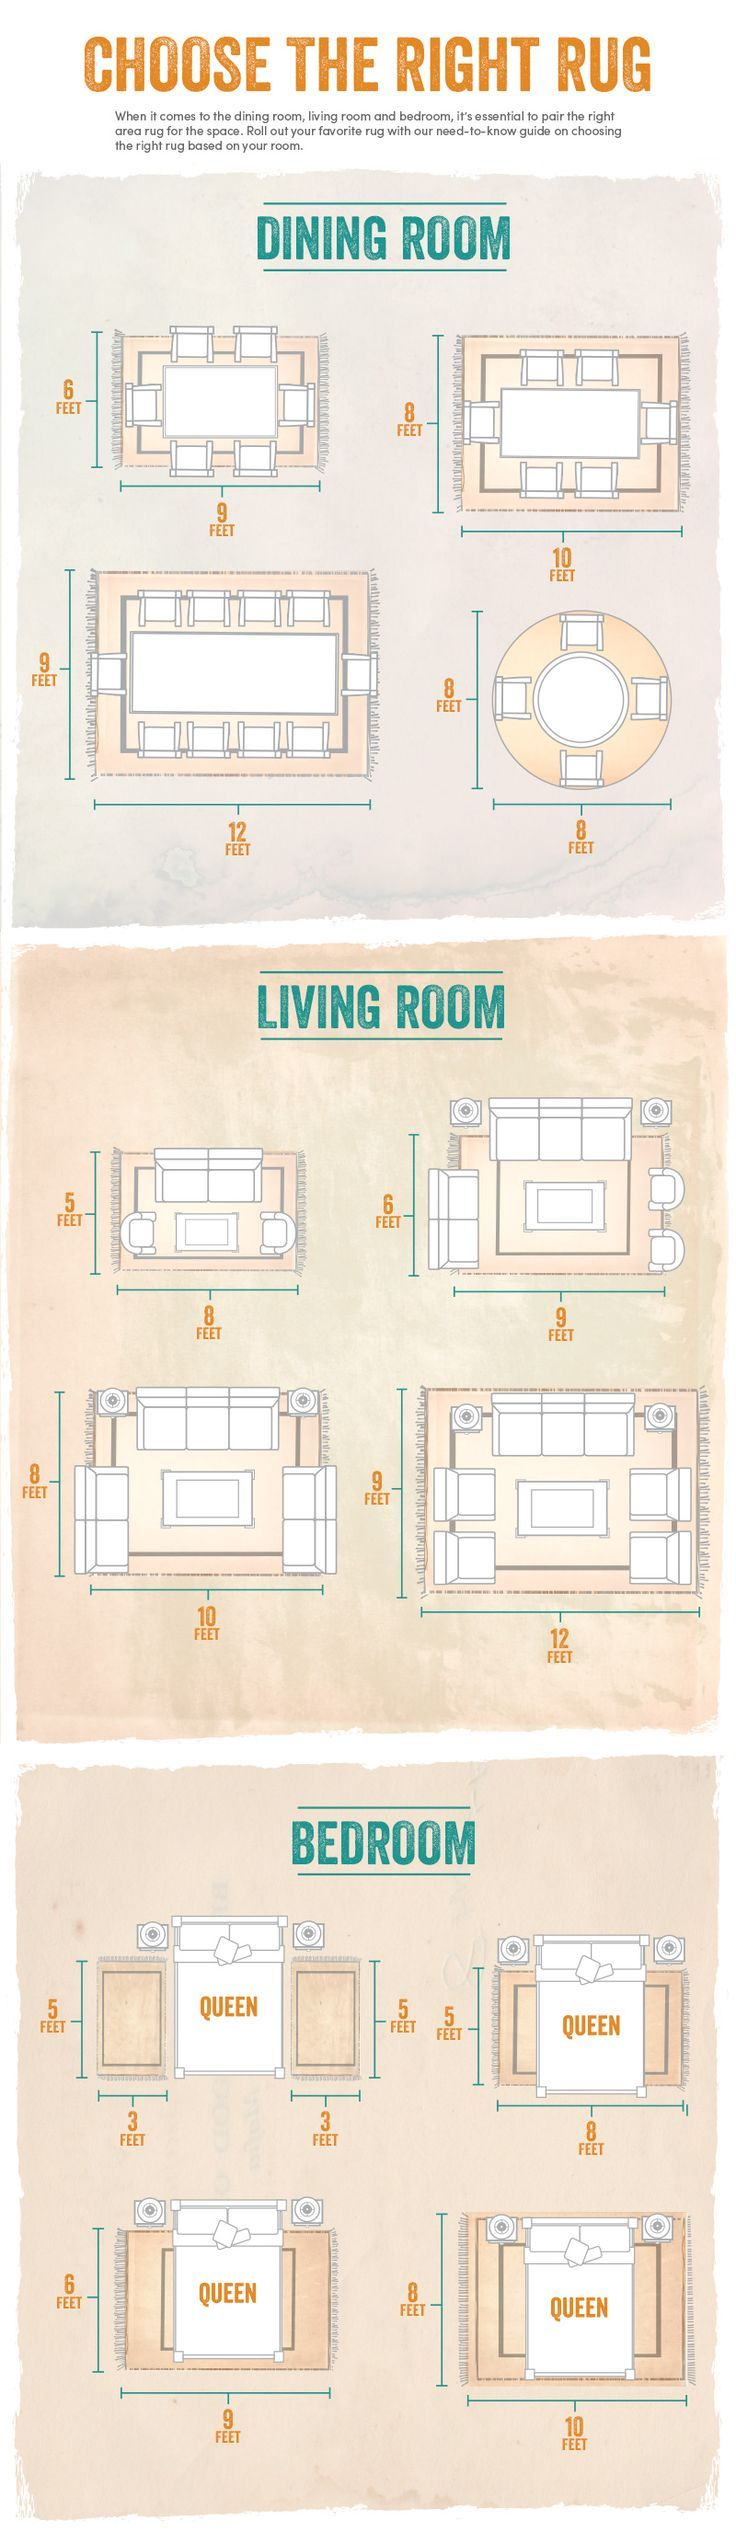 Helpful tips about how to choose the right rug for your dining room, living room and bedroom. Such great information! affiliate